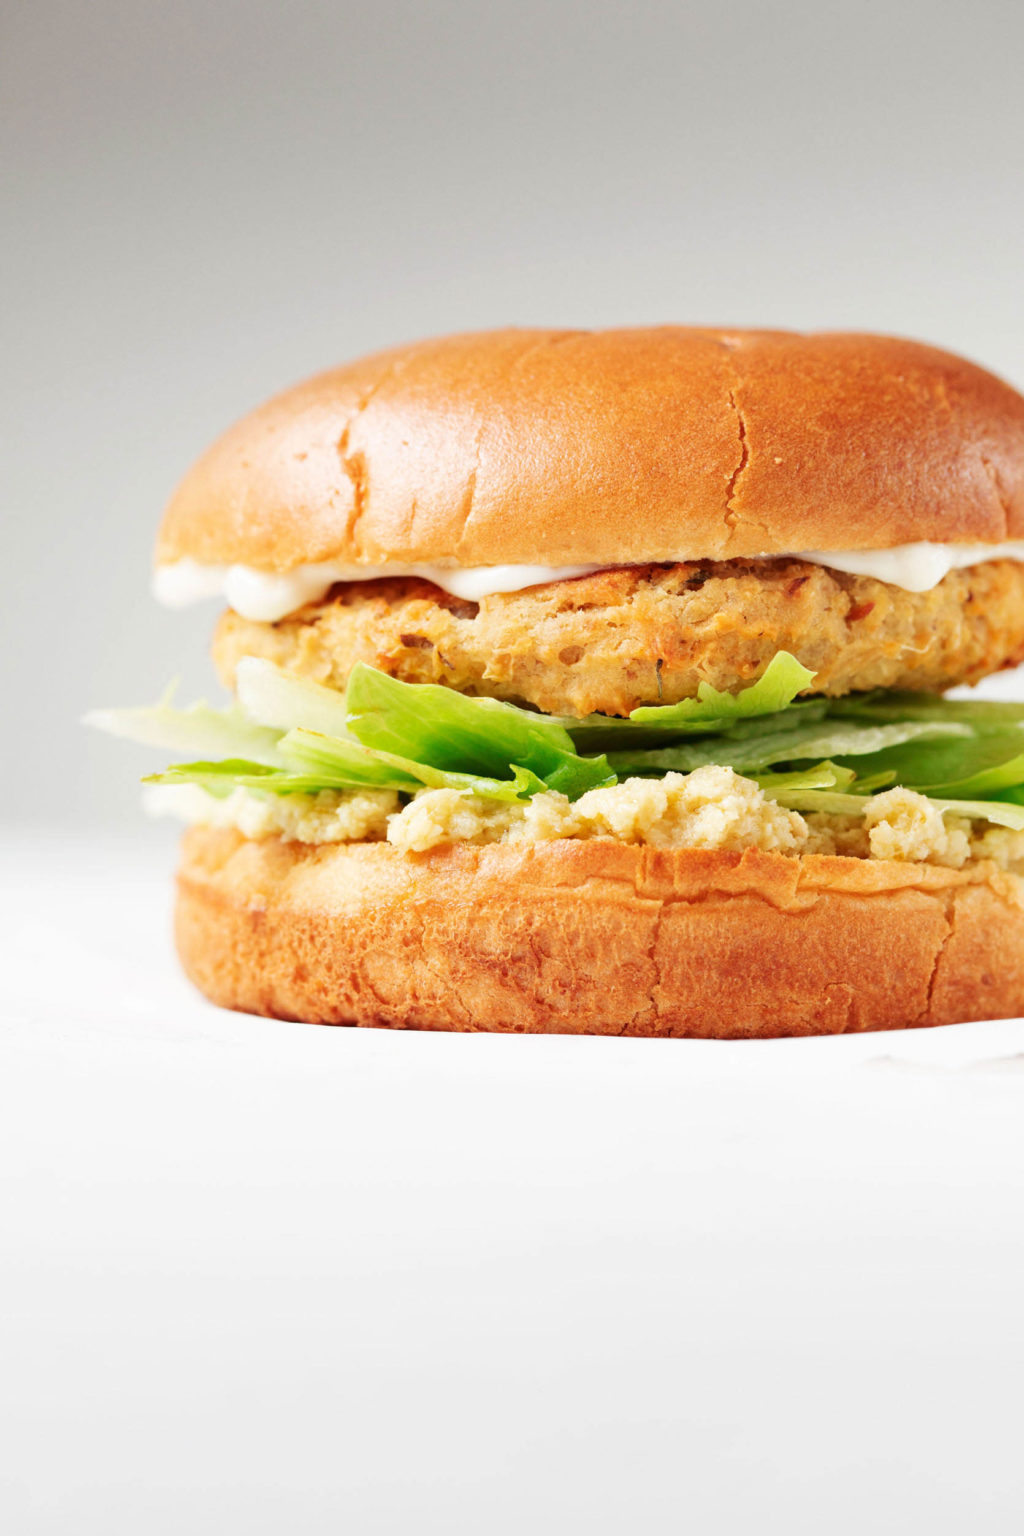 An angled photograph of a vegan artichoke white bean burger, served on a bun with greens and a creamy dip.